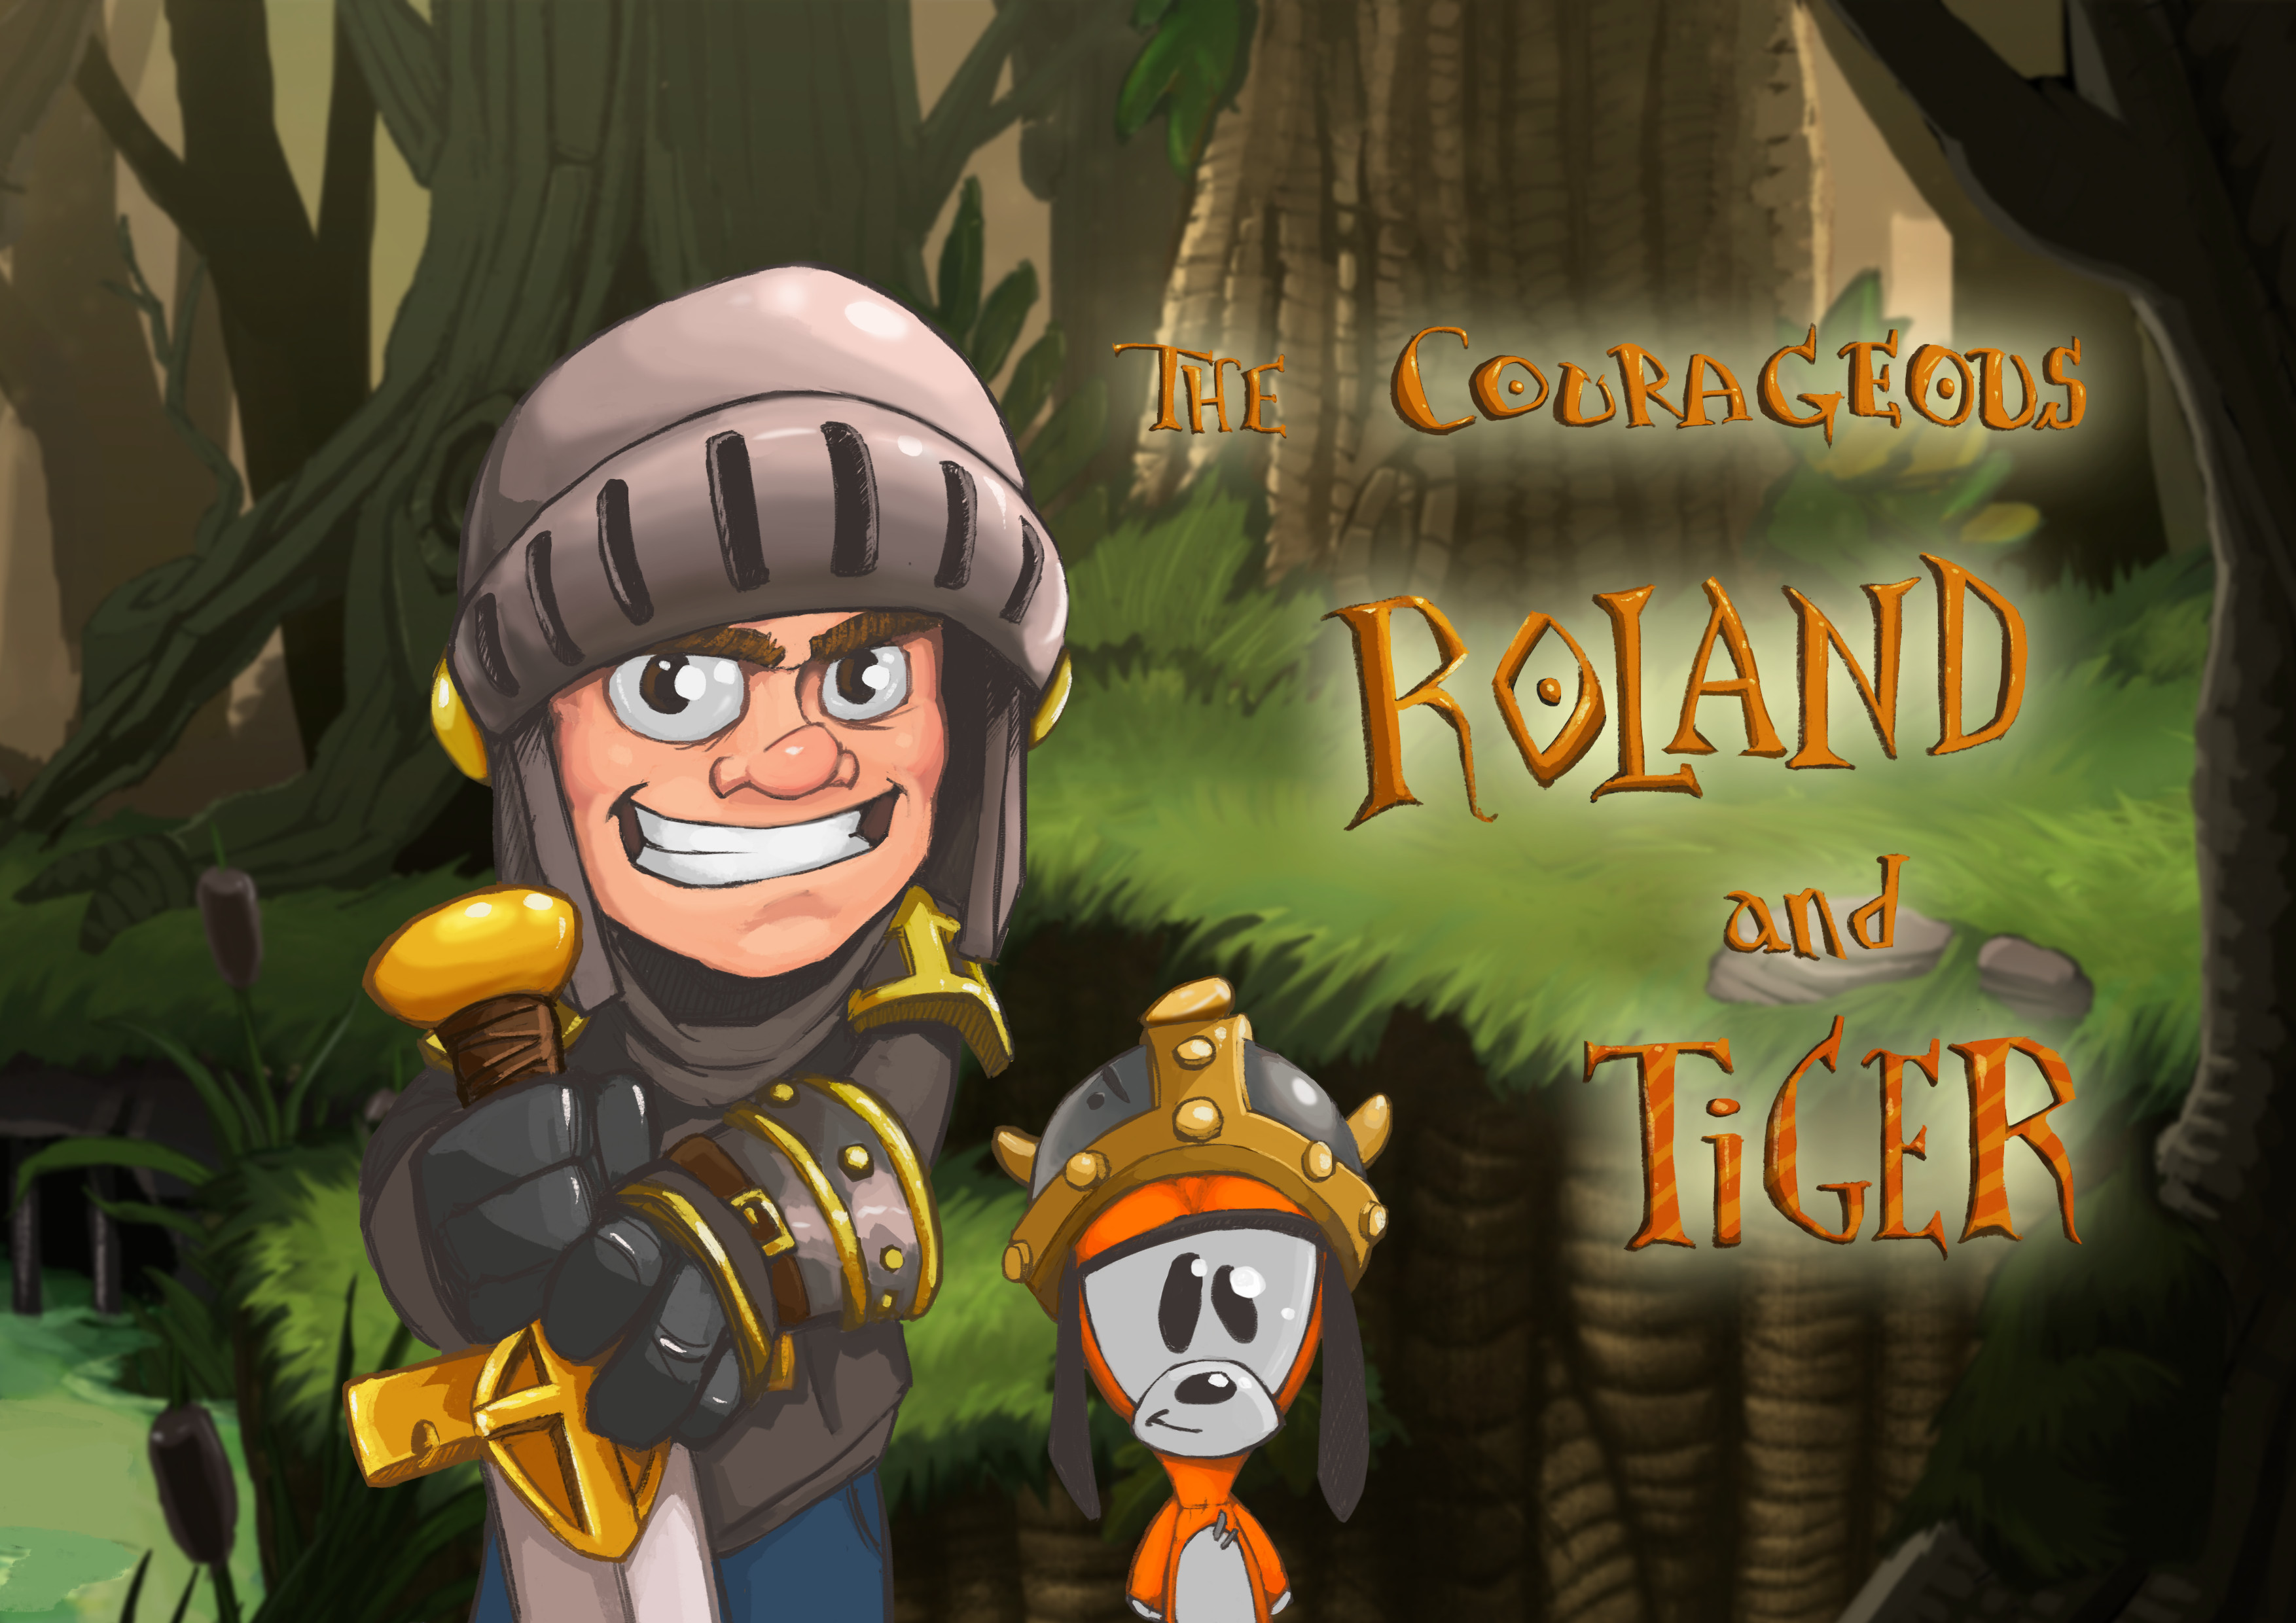 Roland and his magical dog Tiger are the main characters of the game and one of the three playable duos.